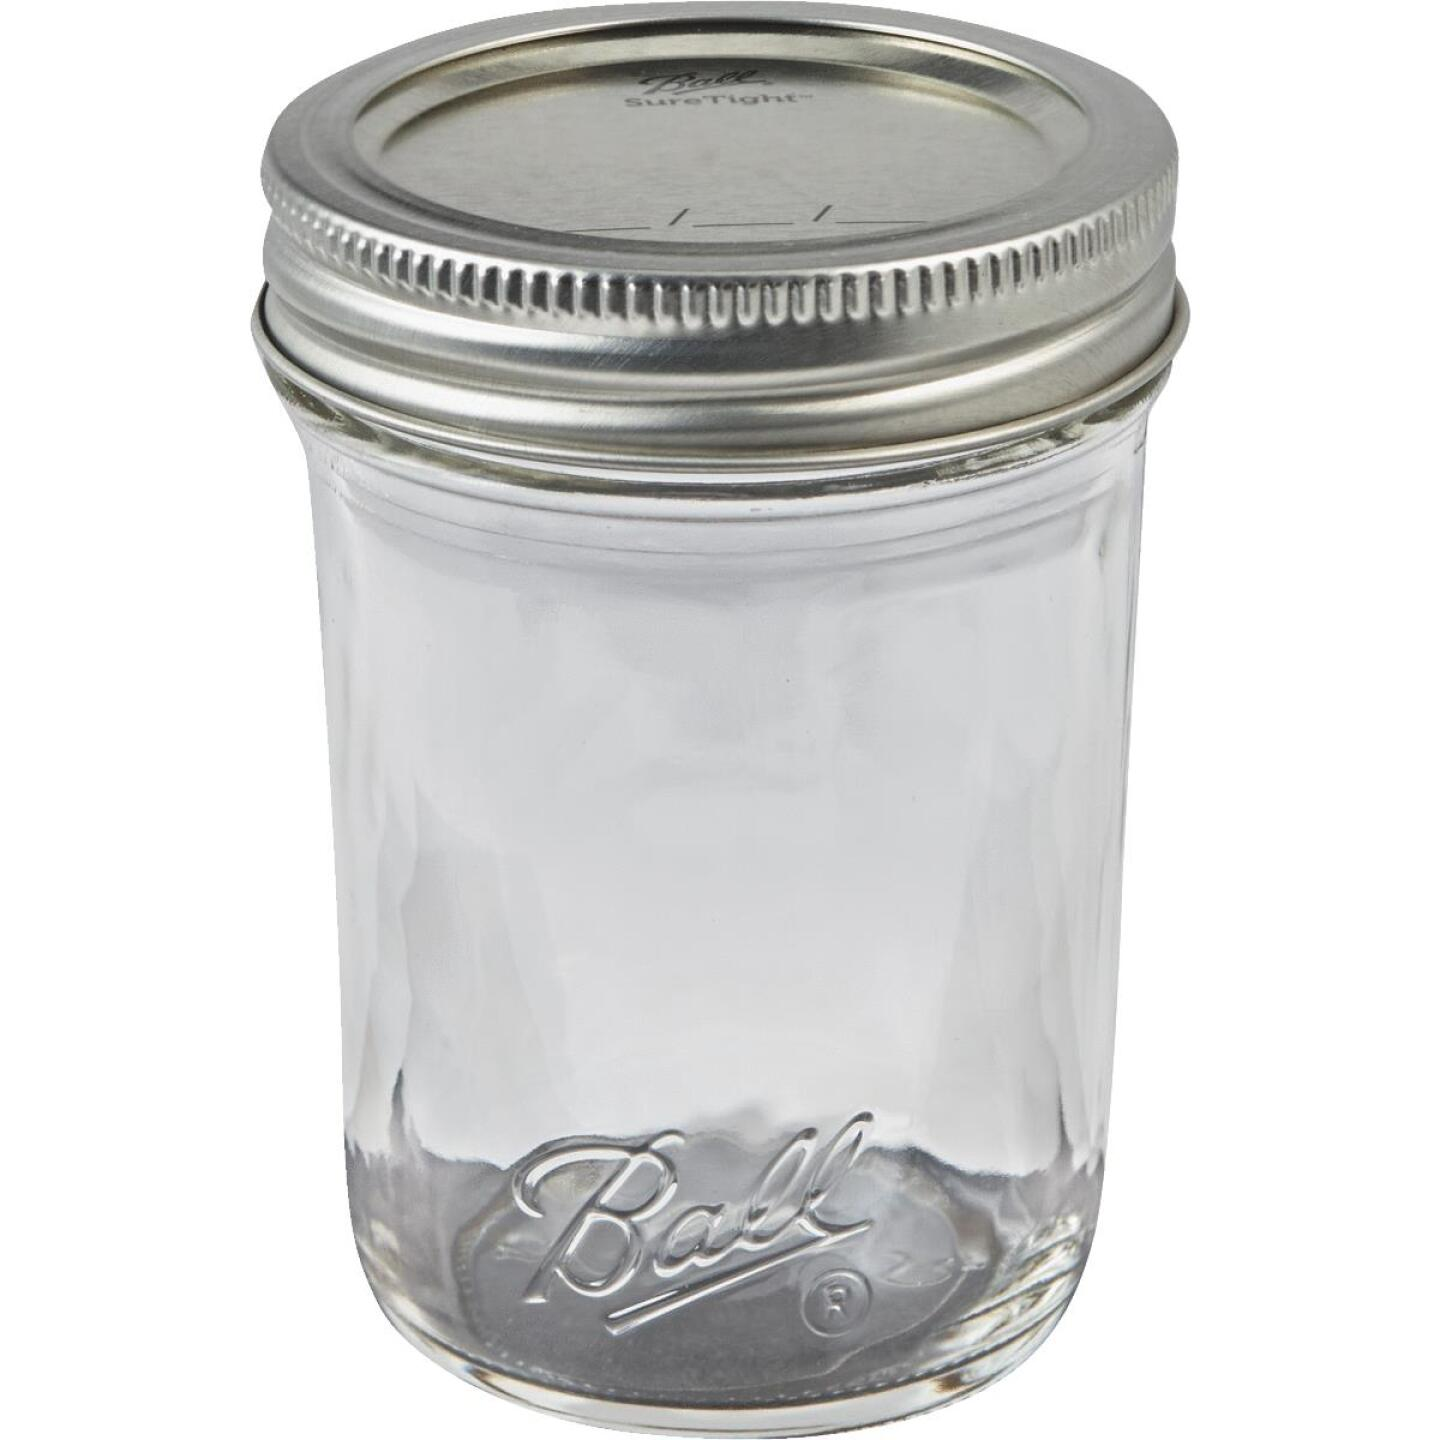 Ball 1/2 Pint Regular Mouth Smooth-Sided Silver Lid Canning Jar (12-Count) Image 3